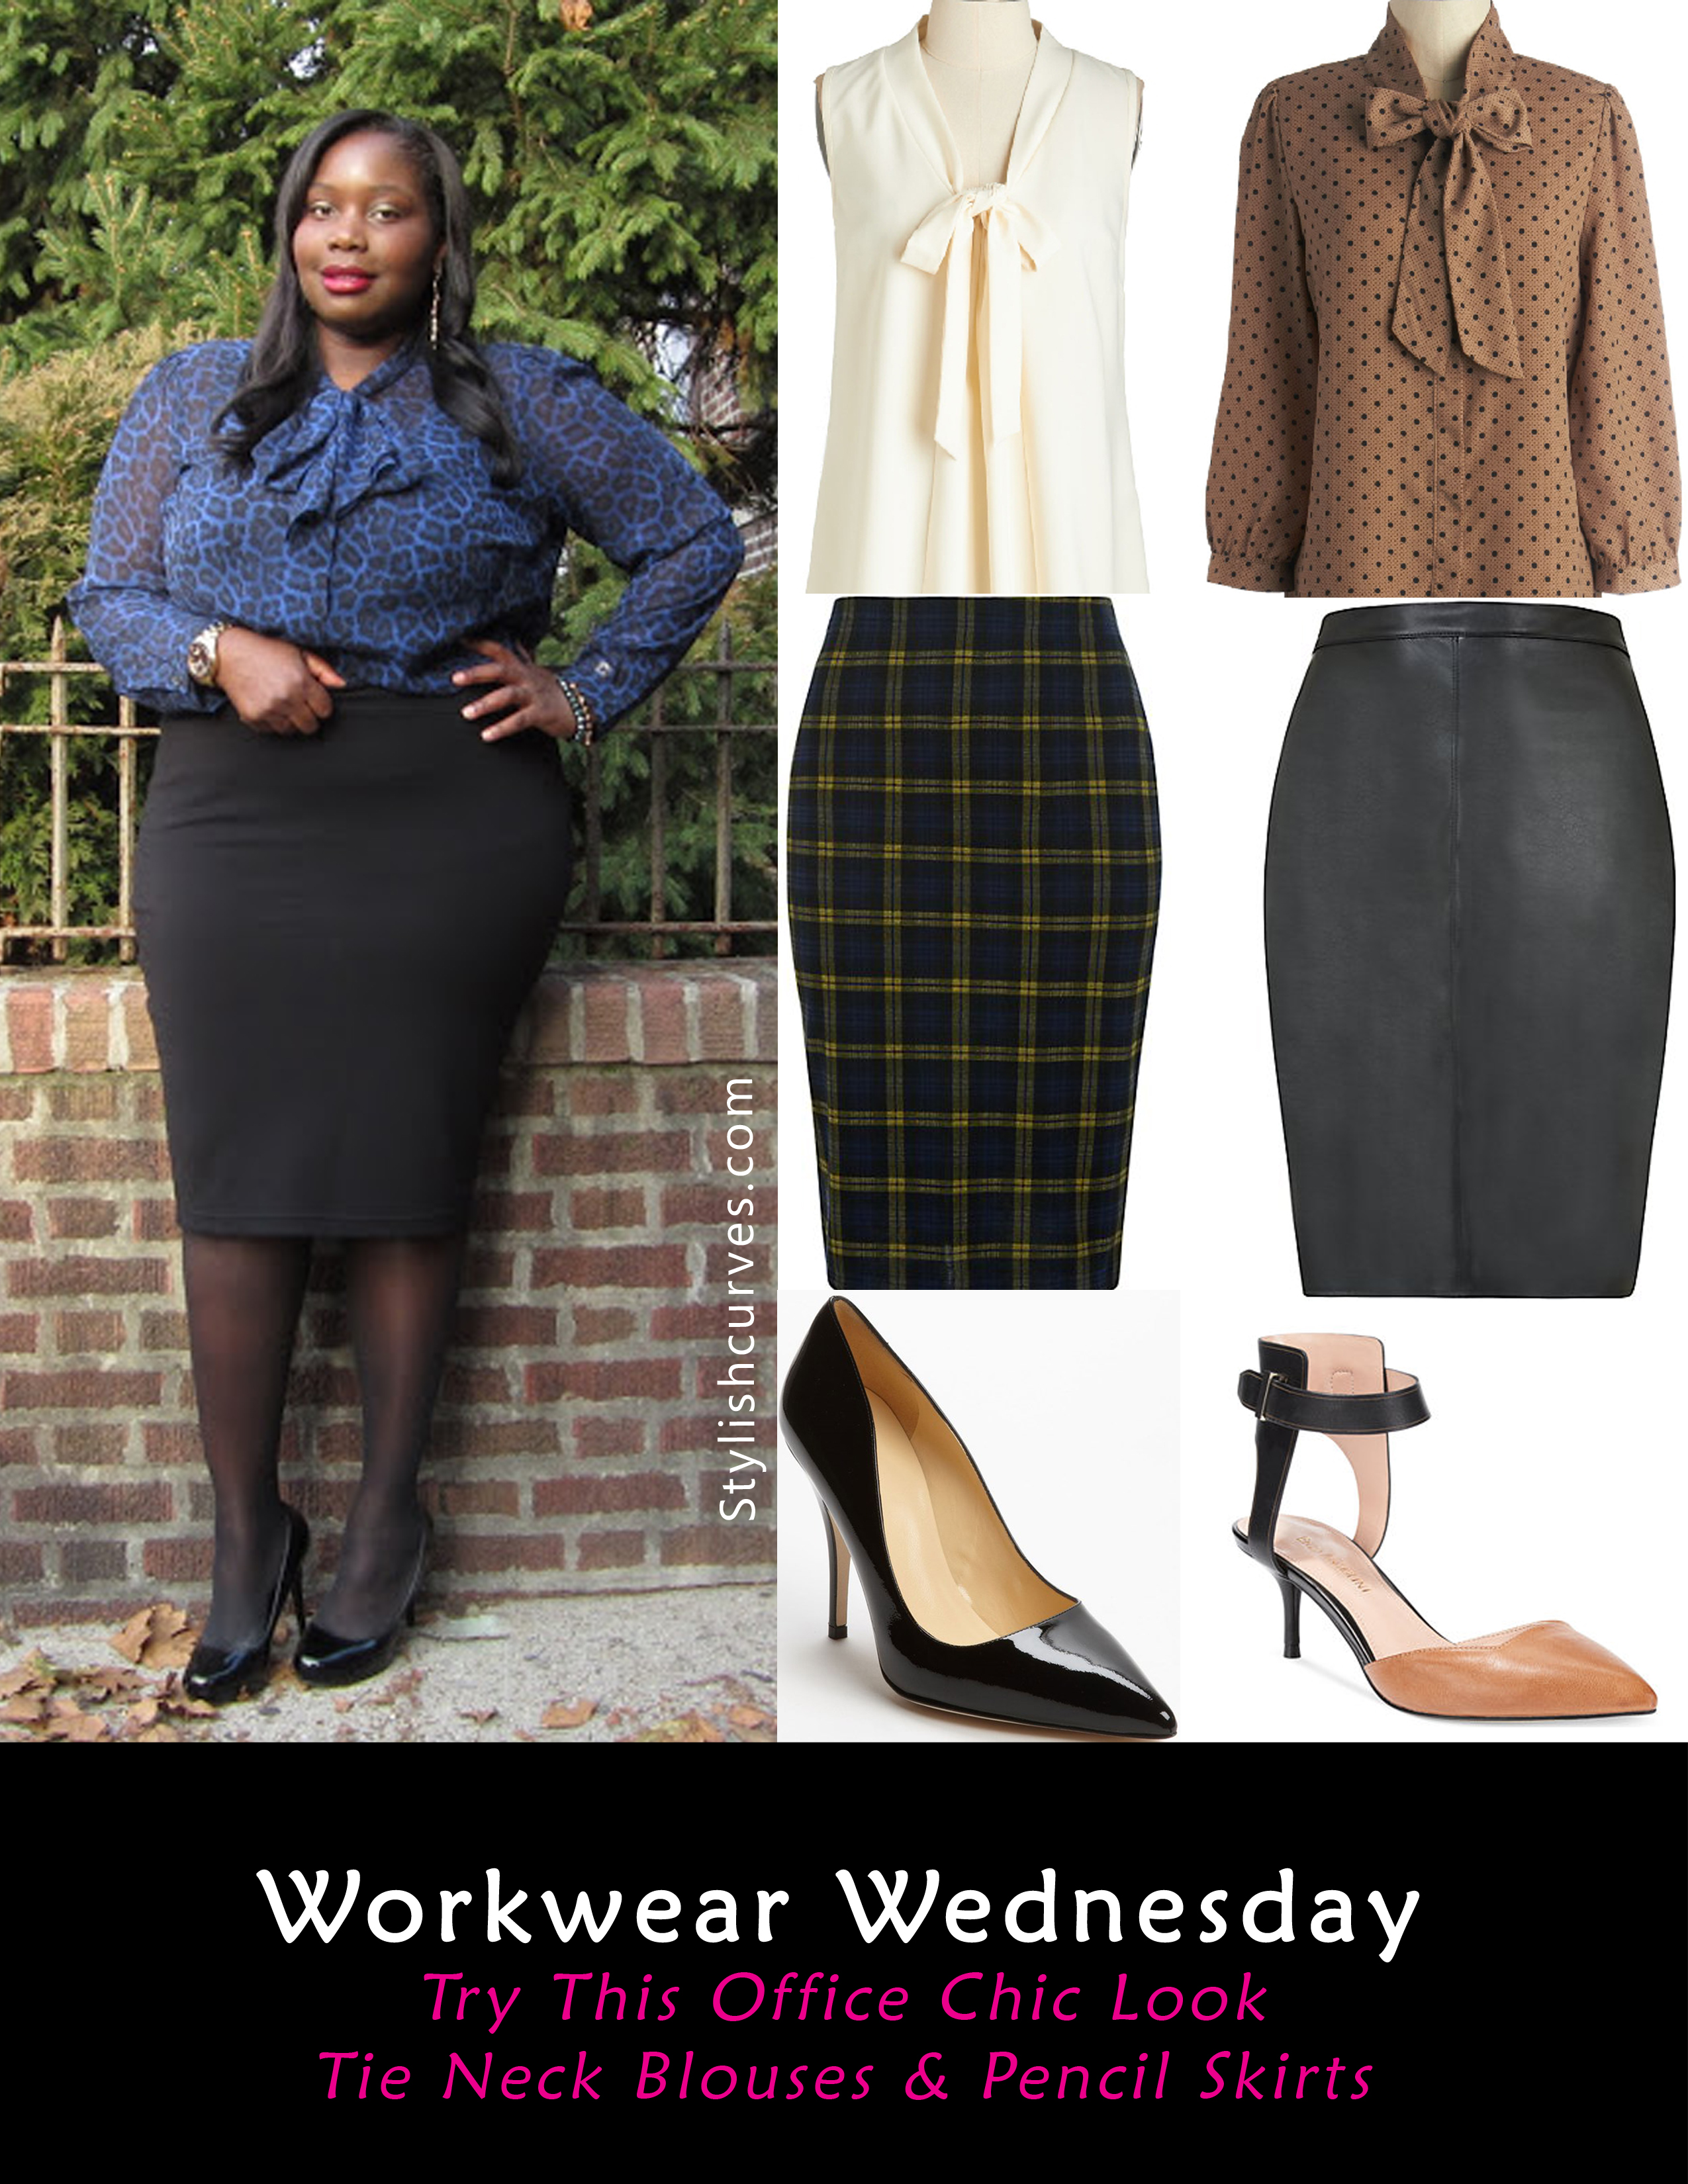 950d5342943 One of my personal favorite office looks is a tie neck blouse and pencil  skirt. I like to think of it as my signature office look (seen HERE).